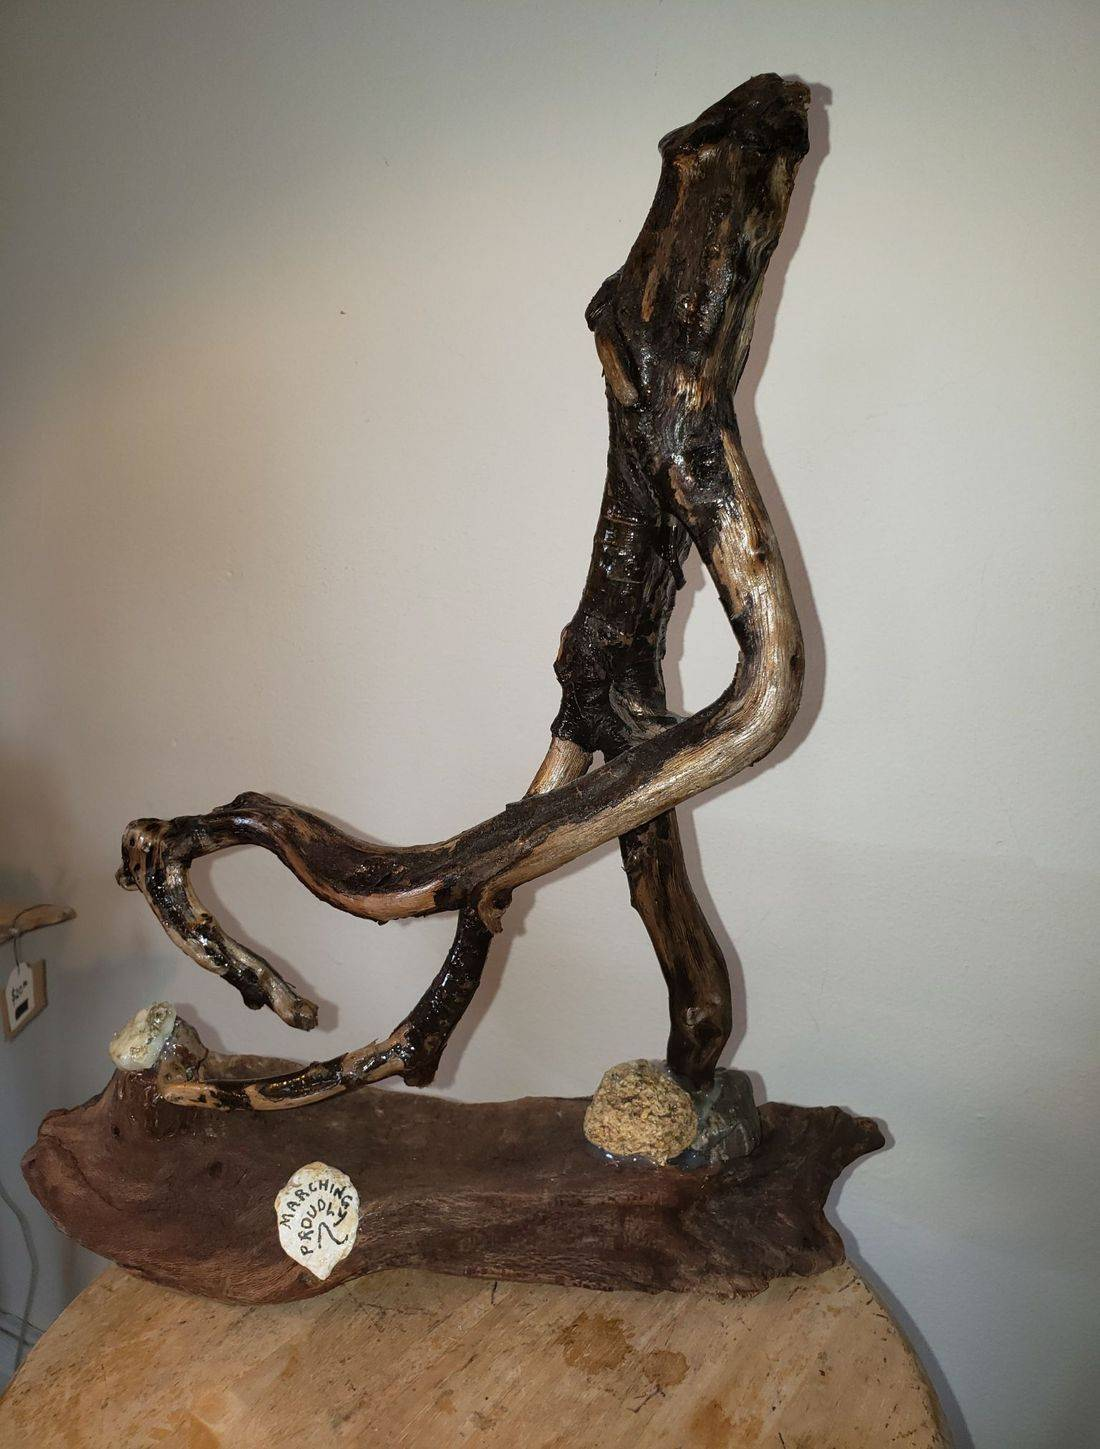 Art, driftwood, shells, stones, rocks, sea glass, river glass, eclectic, local art